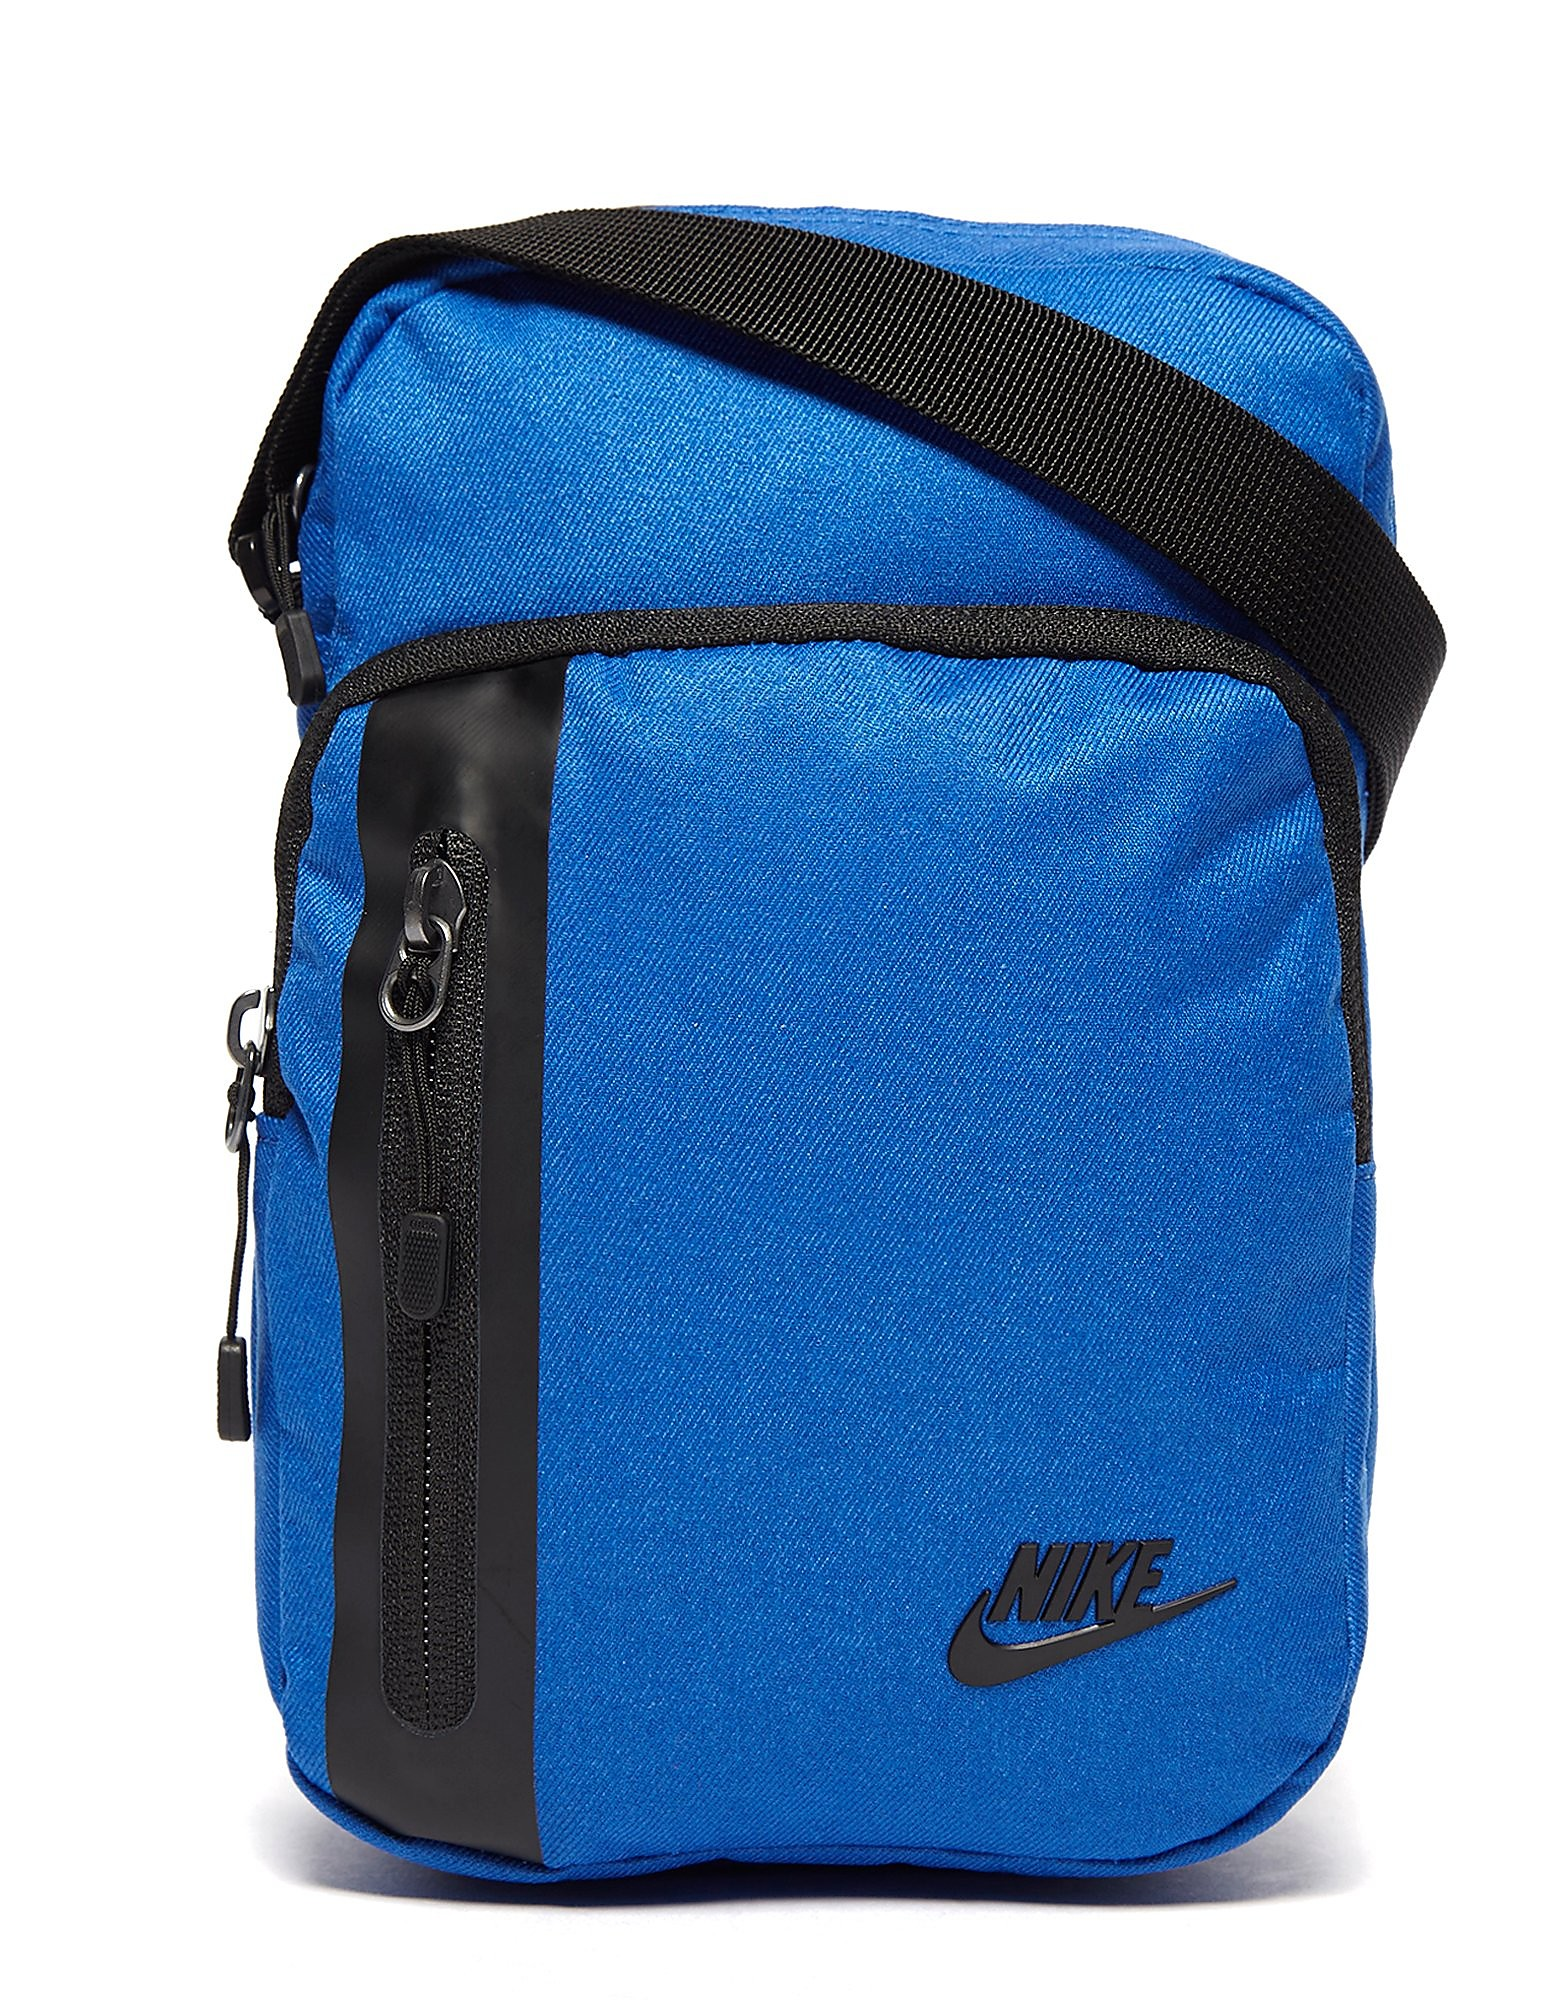 Nike Core Small Items 3.0 Bag